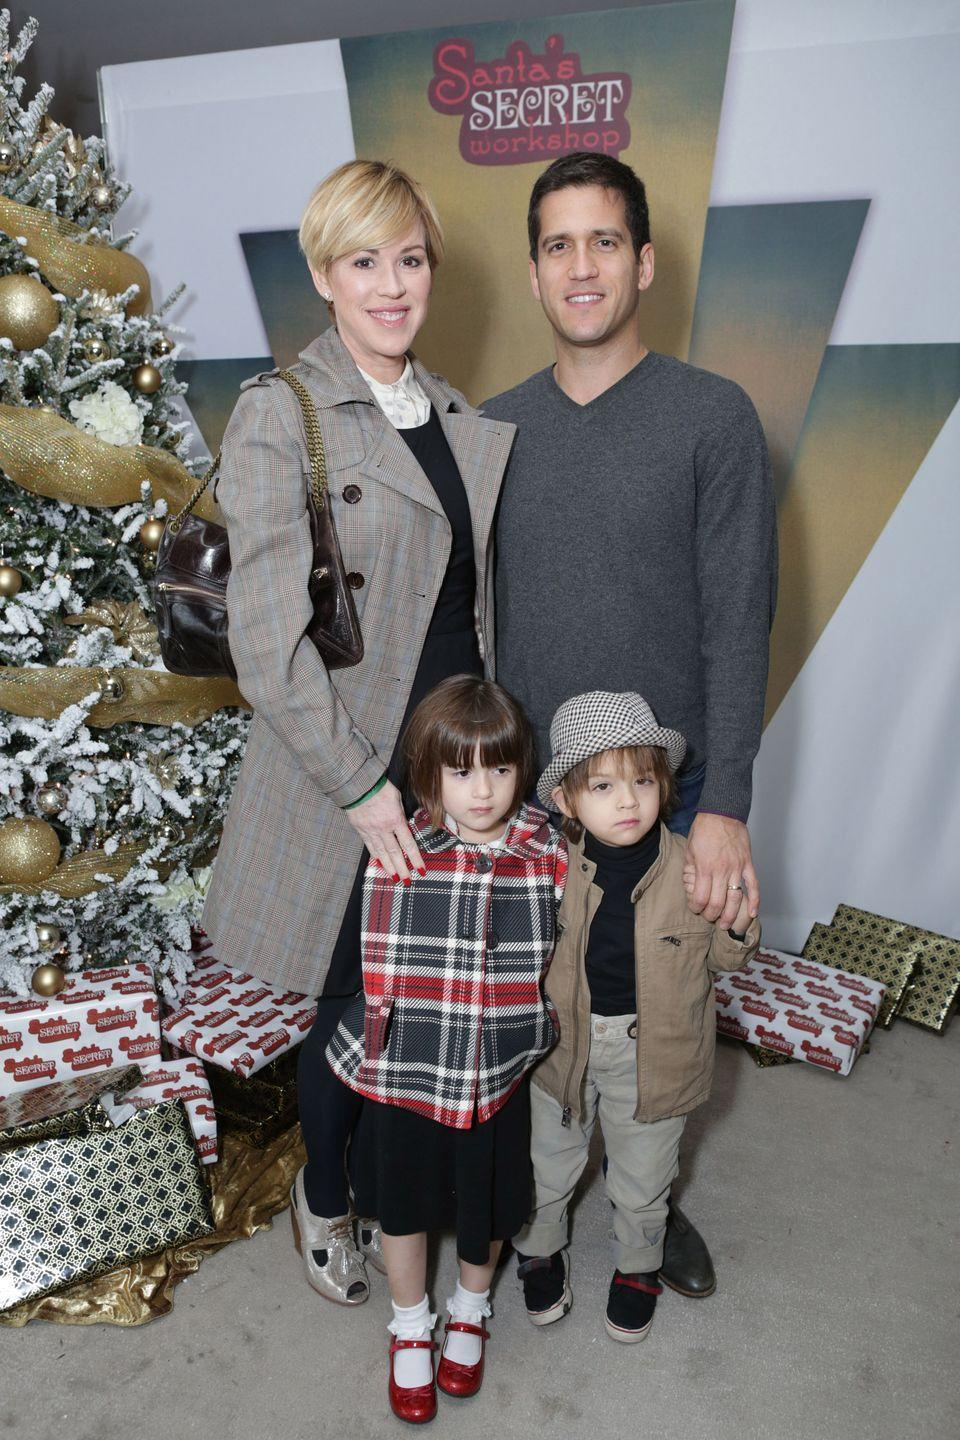 "<p>Molly Ringwald and husband, Panio Gianopoulos, welcomed twins Adele and Roman in 2009, when the actress was 41. Ringwald had previously given birth to daughter, Mathilda, in 2003, but as Ringwald told <a href=""http://celebritybabies.people.com/2009/08/07/molly-ringwald-introduces-twins-adele-and-roman/"" rel=""nofollow noopener"" target=""_blank"" data-ylk=""slk:People"" class=""link rapid-noclick-resp""><em>People</em></a>, the second attempt at pregnancy was a bit more difficult. ""After Mathilda was born, I had some things fixed""—surgery to remove fibroids—""that made it easier to get pregnant again,"" she explained. ""There were some other issues, too. But I was so, so lucky to be 41 and to be so healthy during this pregnancy.""</p>"